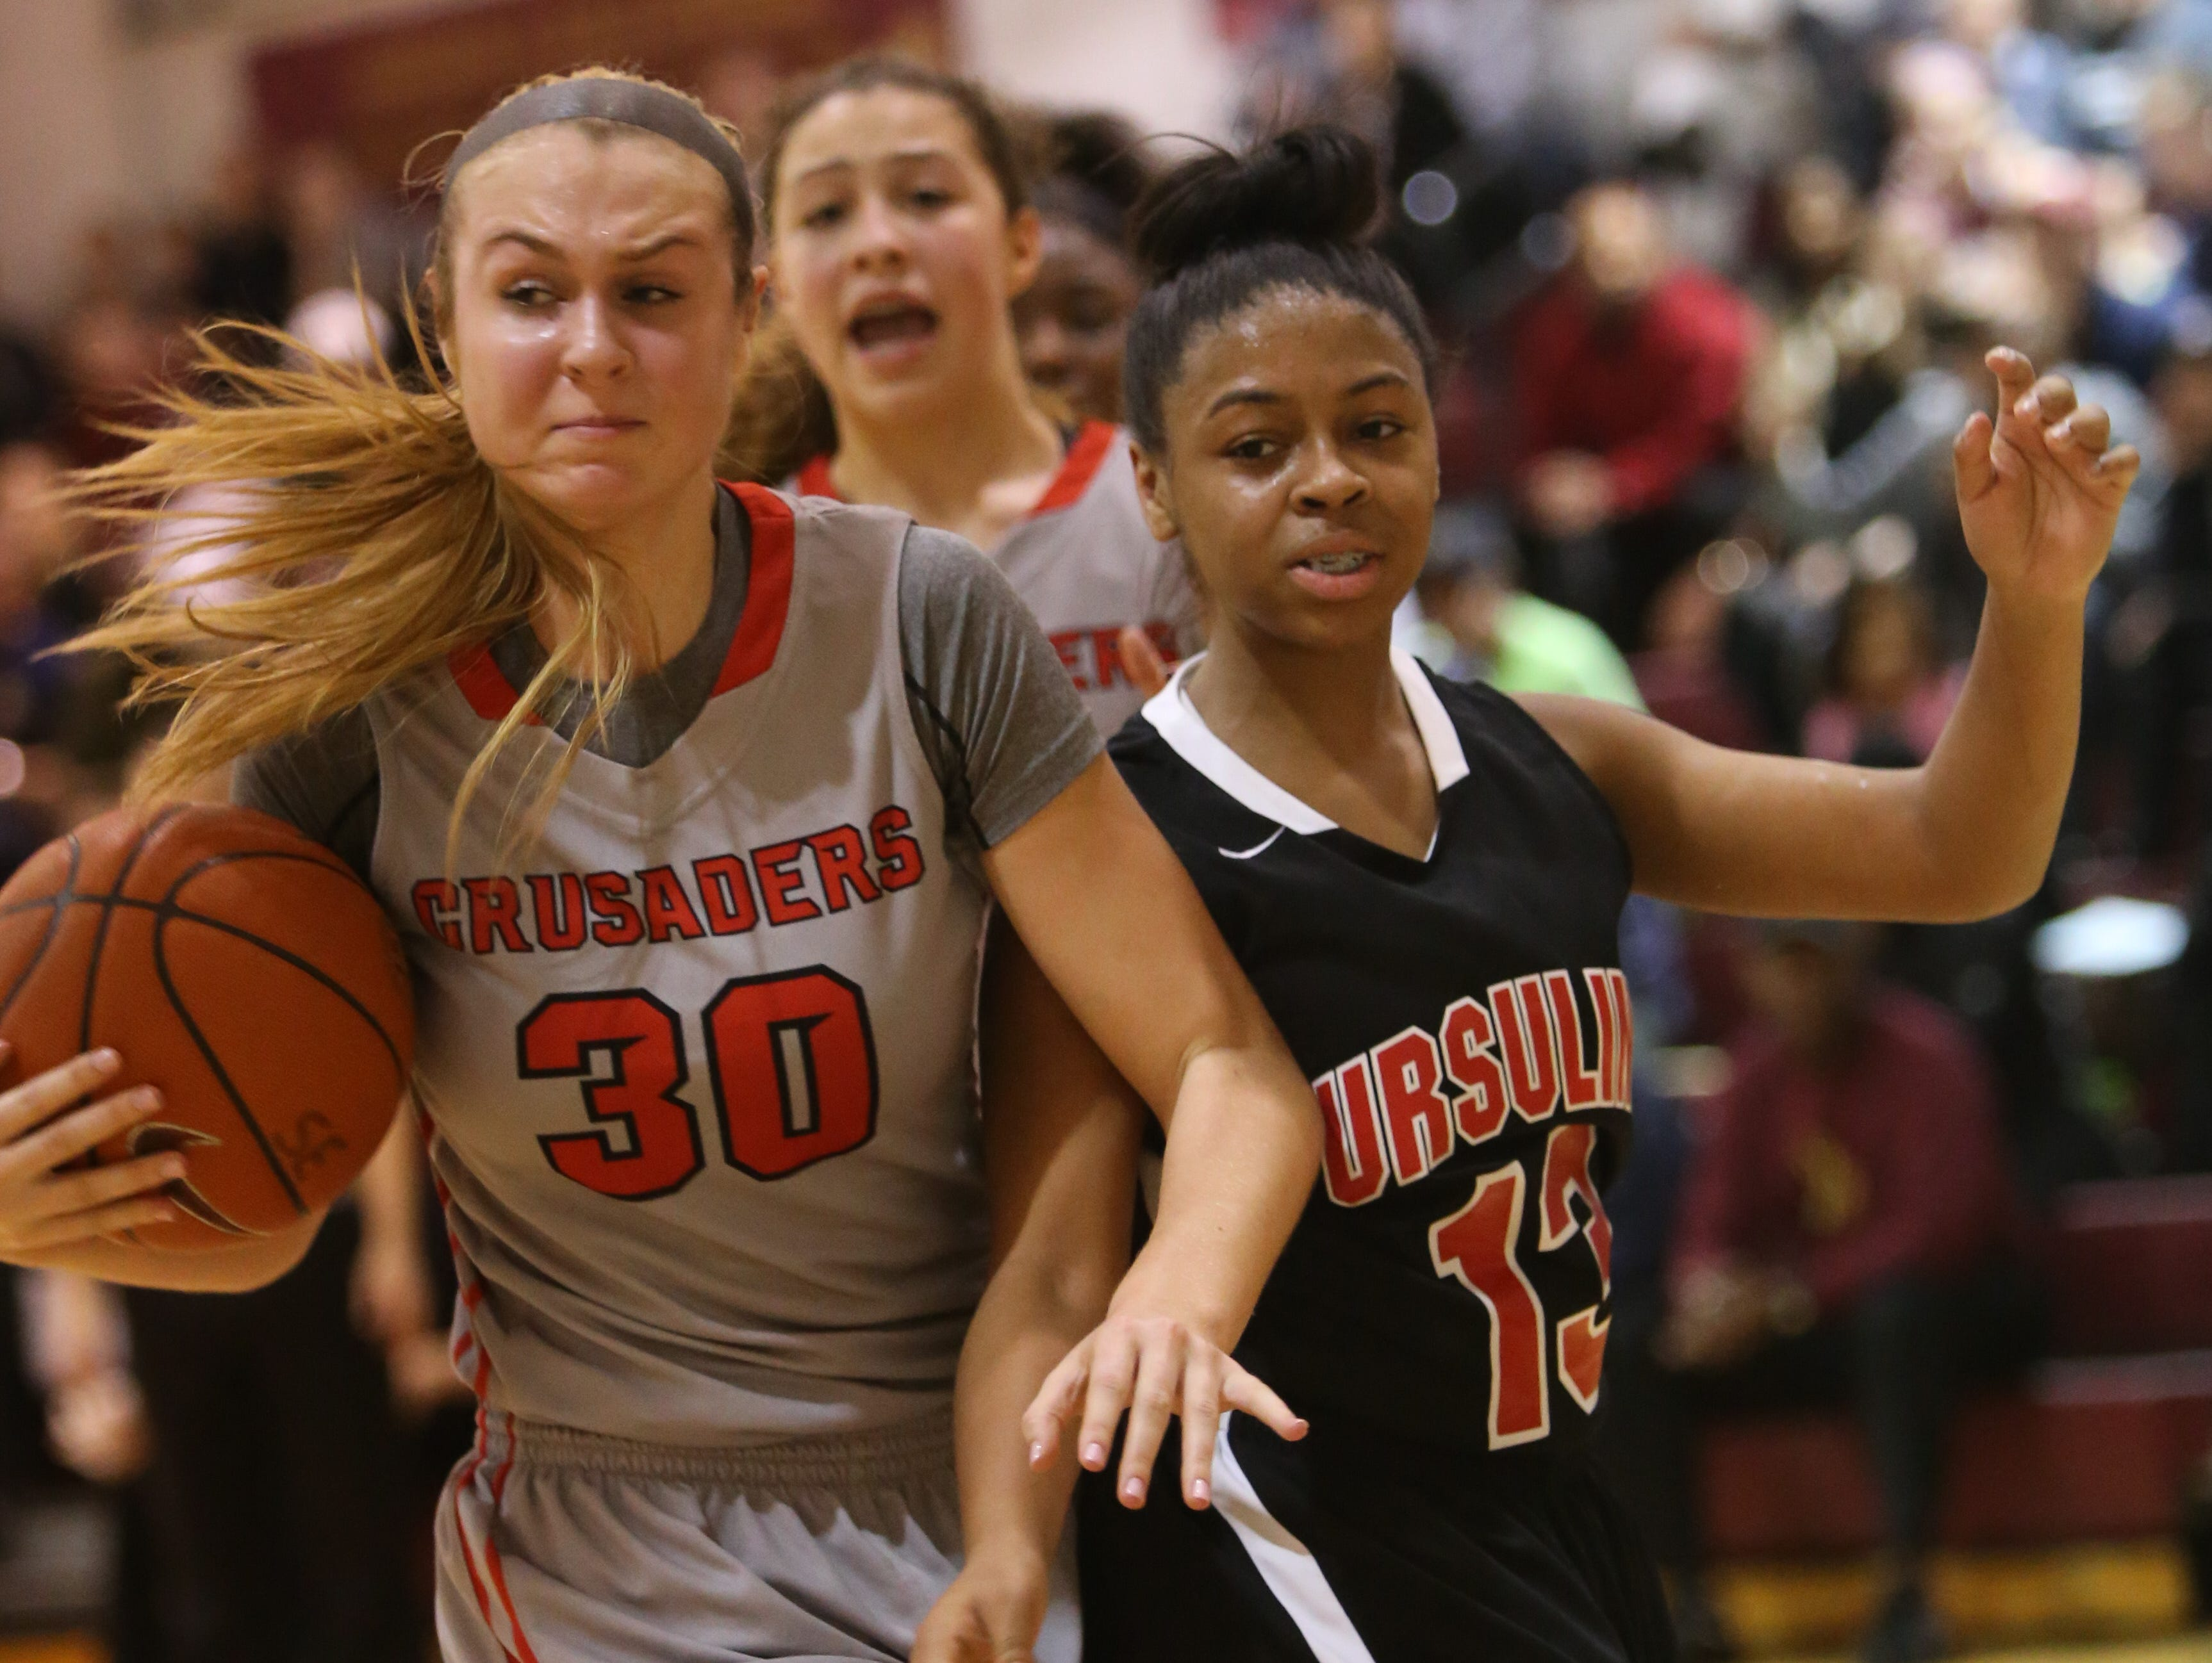 Long Island Lutheran forward Aislinn Flynn keeps the ball from Ursuline guard Sabriya Harris in the third quarter,. Ursuline falls to Long Island Lutheran 52-55 in the semifinals of the Saint Francis Healthcare Cup of the Diamond State Classic at St. Elizabeth High School Tuesday.